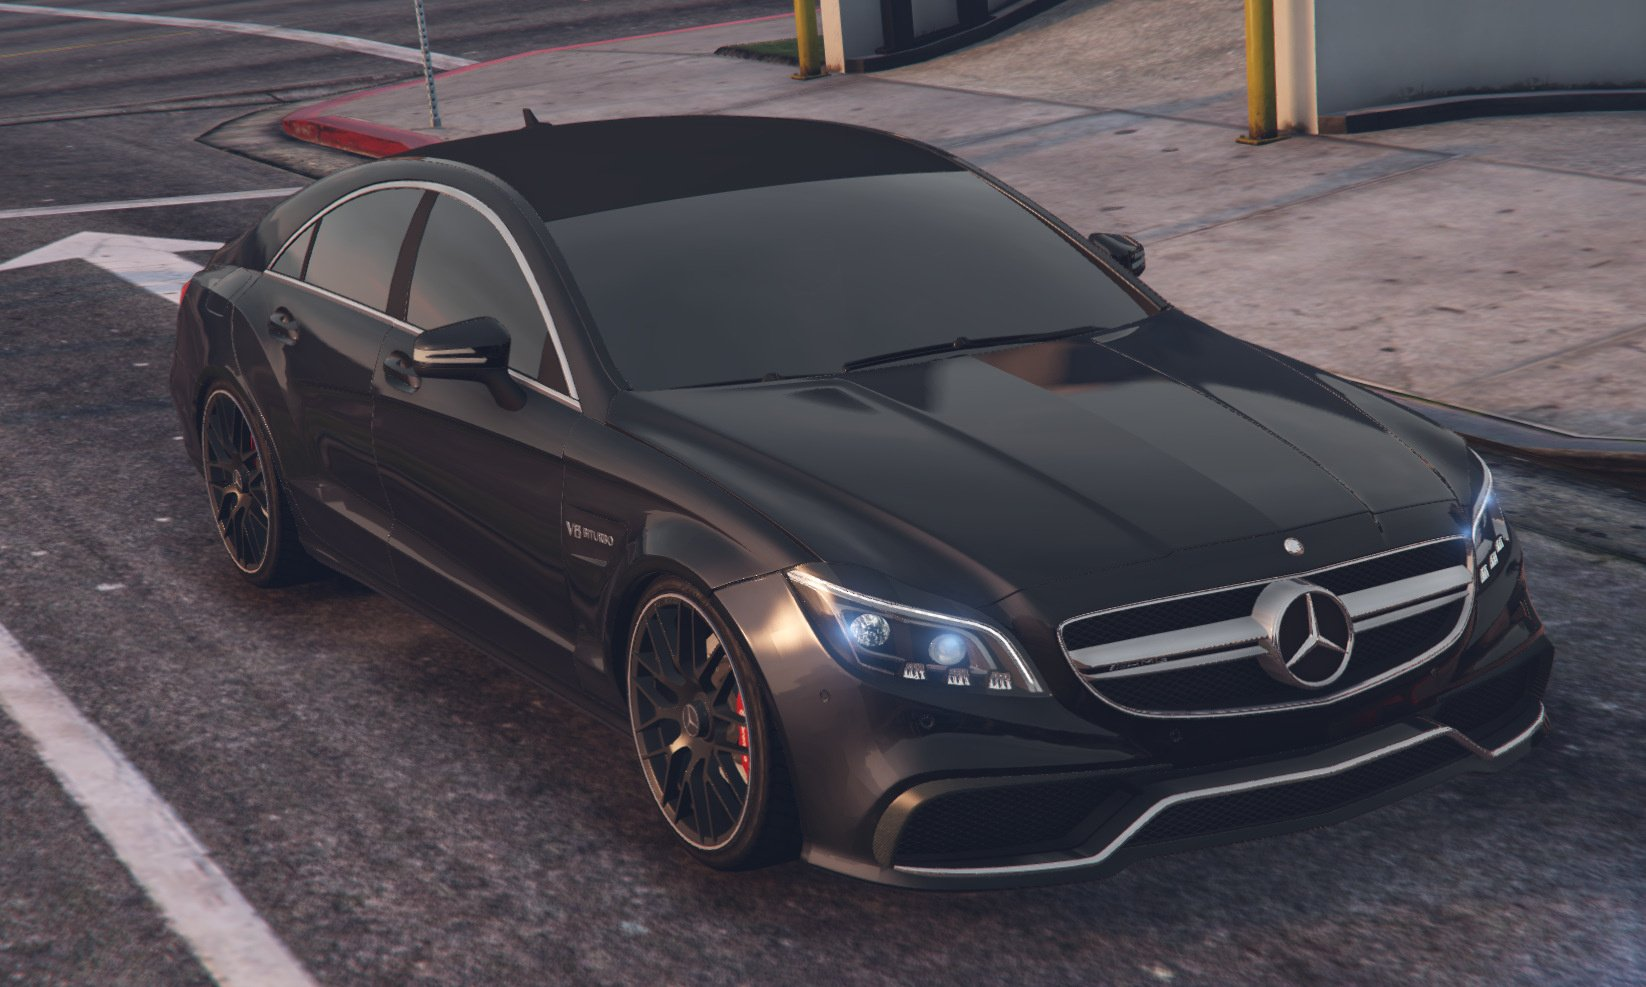 Mercedes benz cls 6 3 amg 2015 gta5 for Mercedes benz amg 6 3